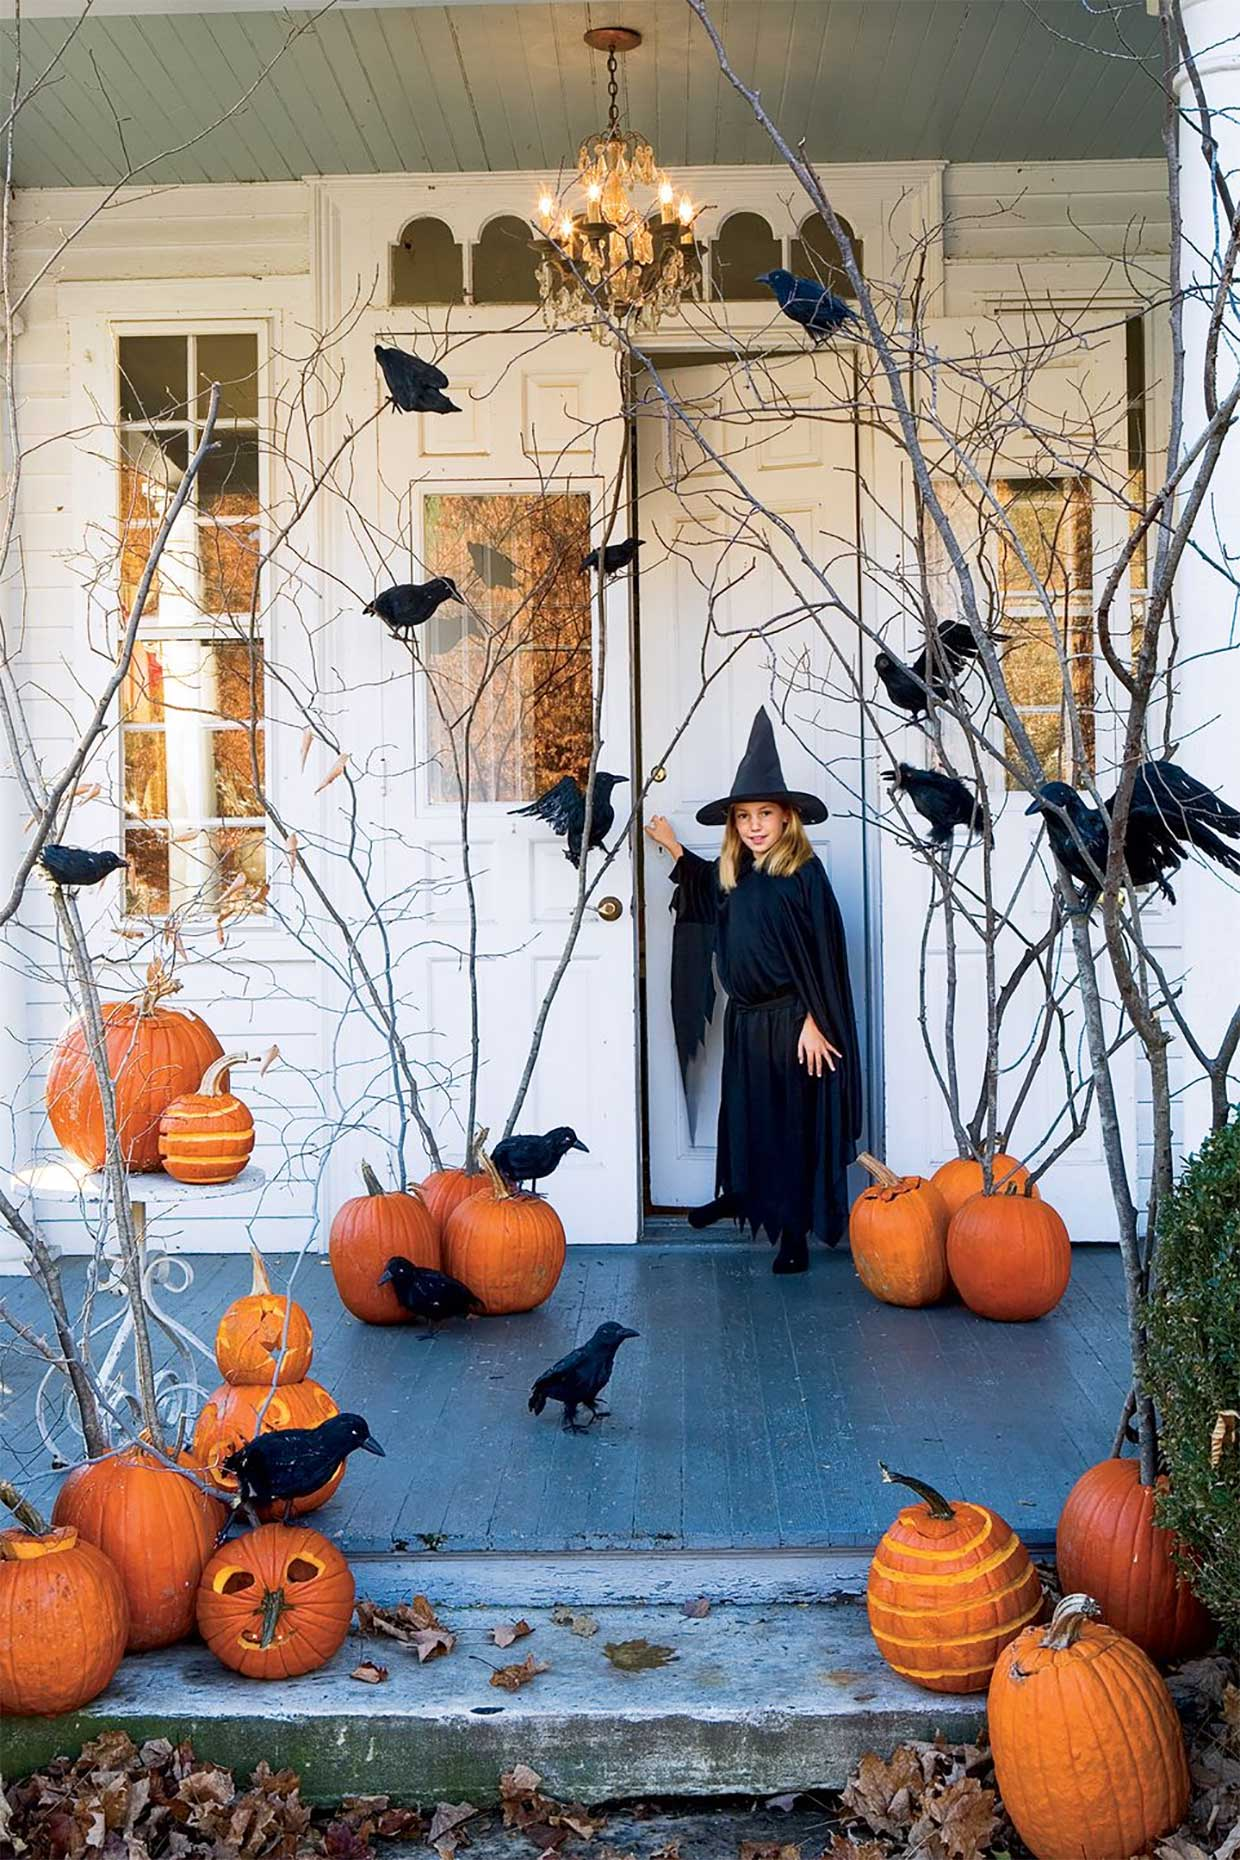 Halloween Decorations Pumpkins Ravens